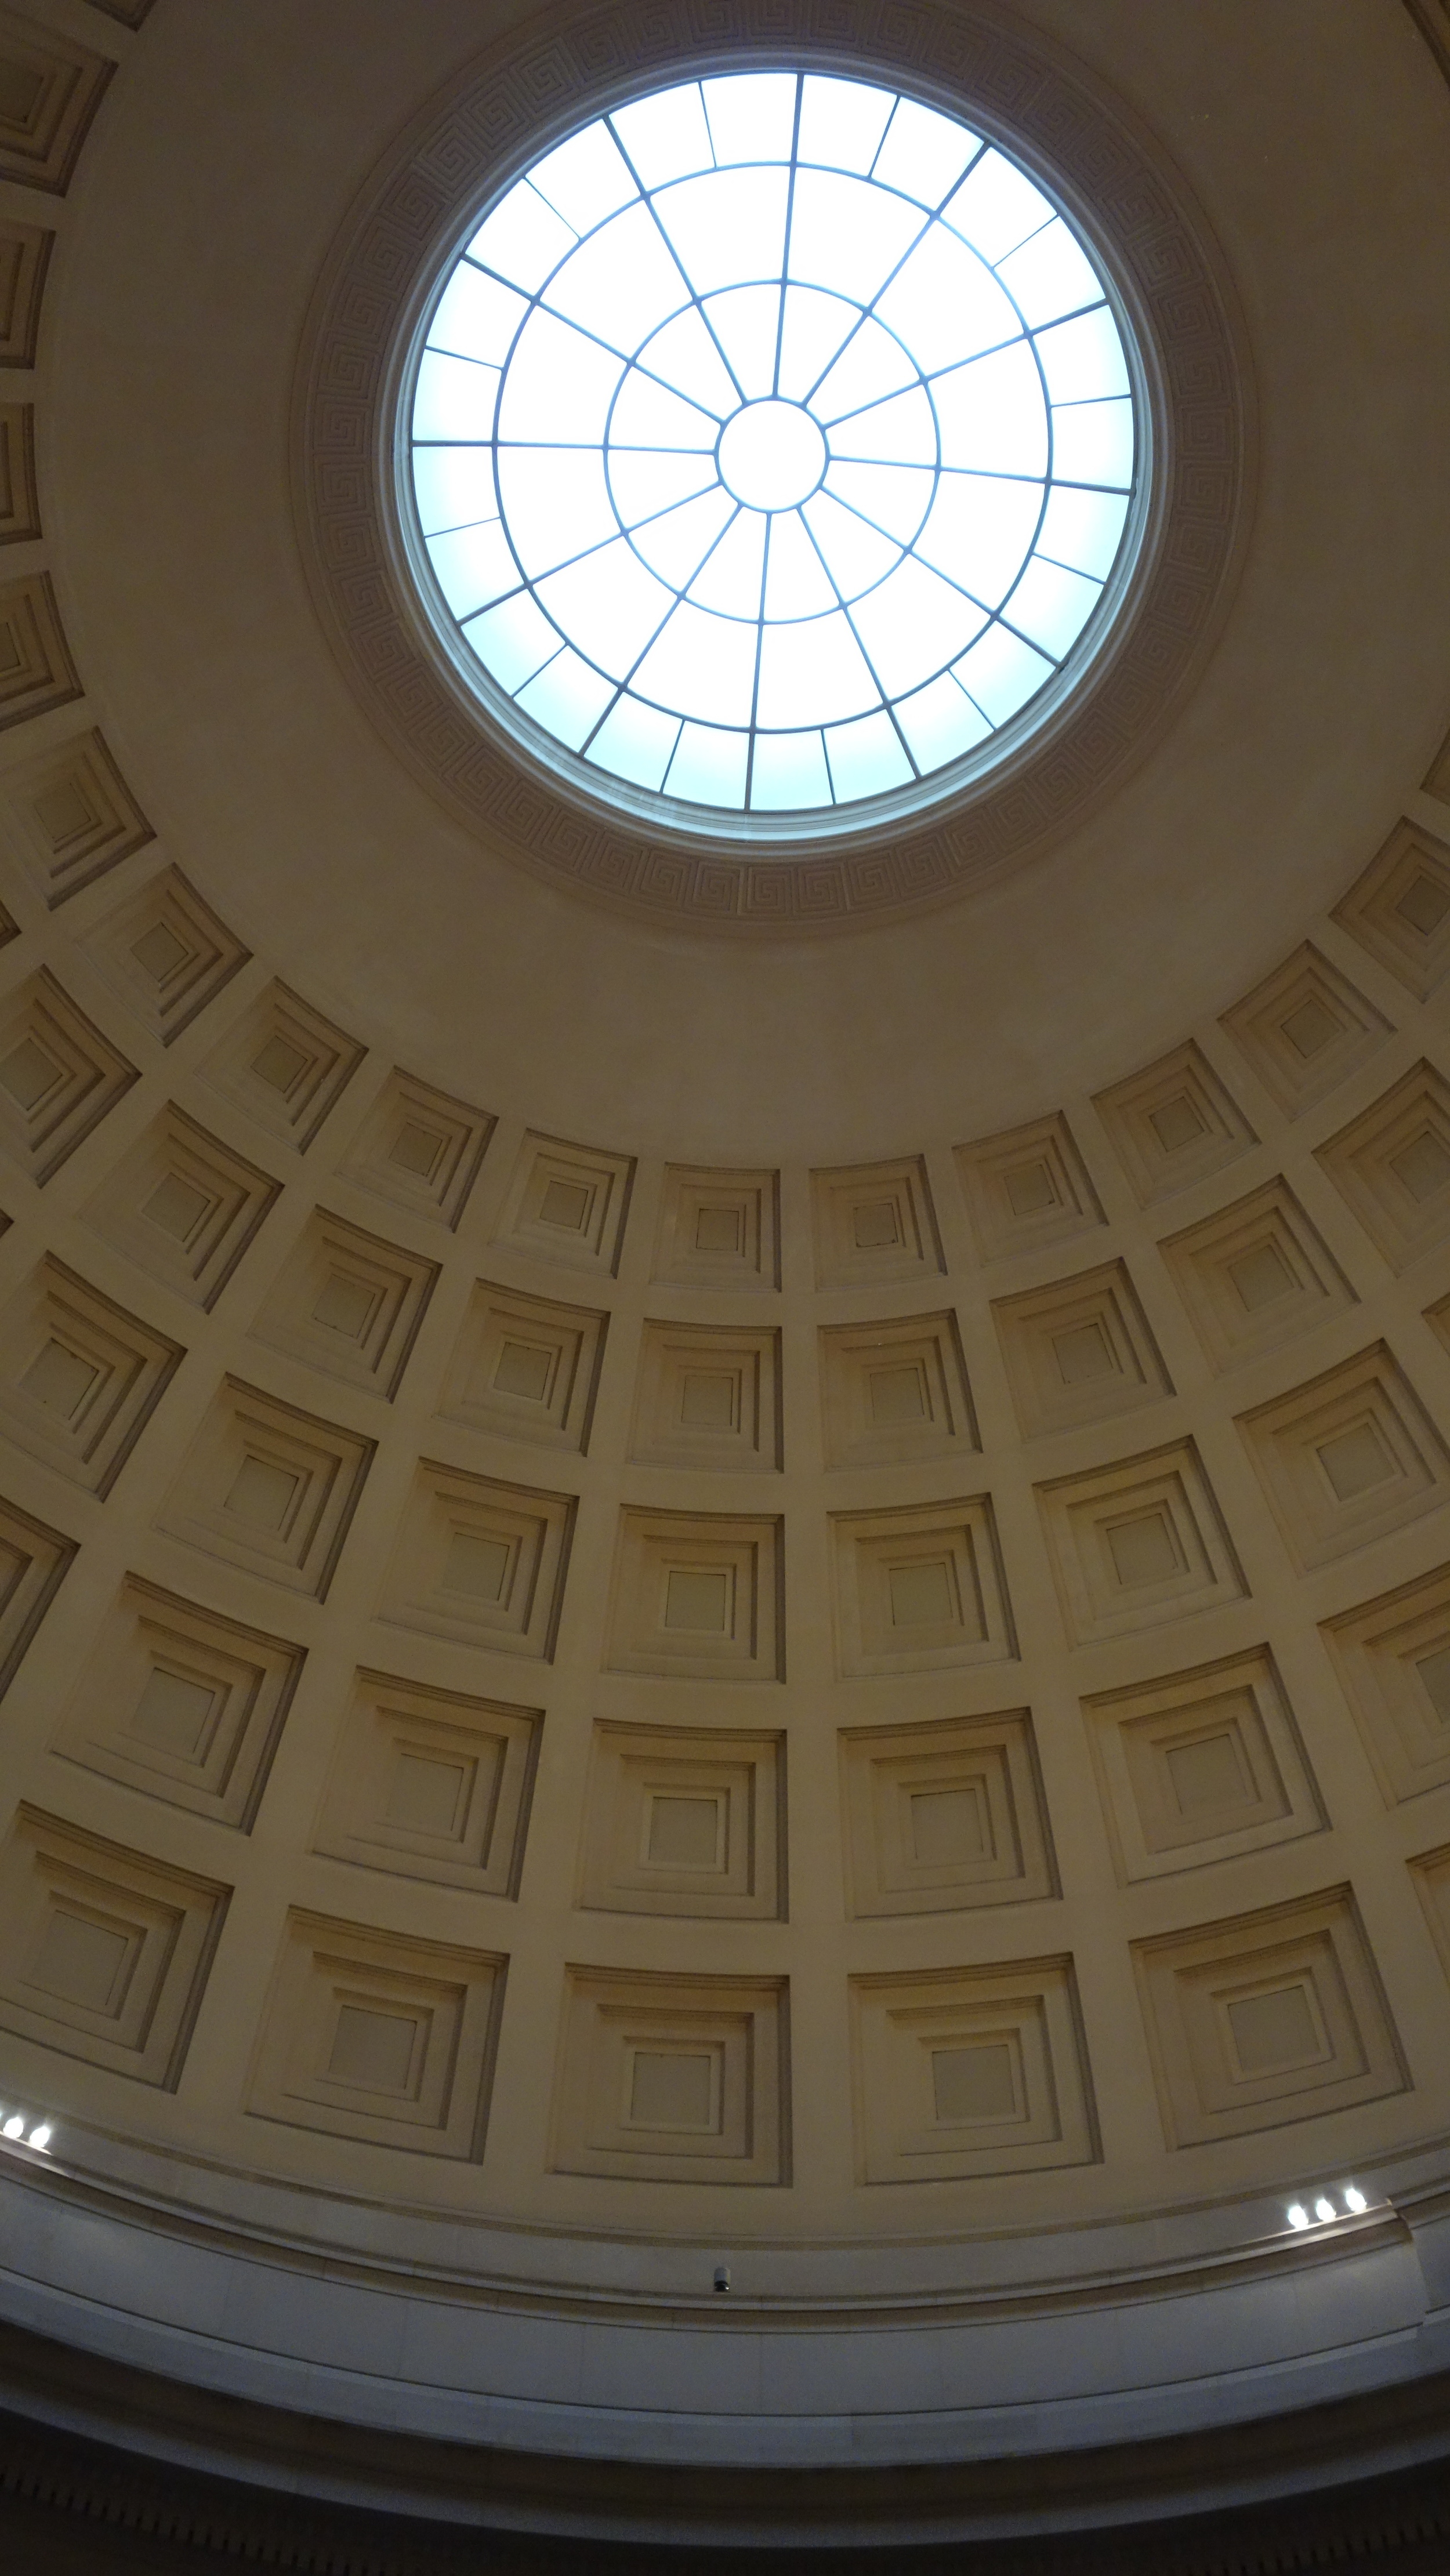 Dome in National Gallery of Art- I am designing a wall application that mimics this